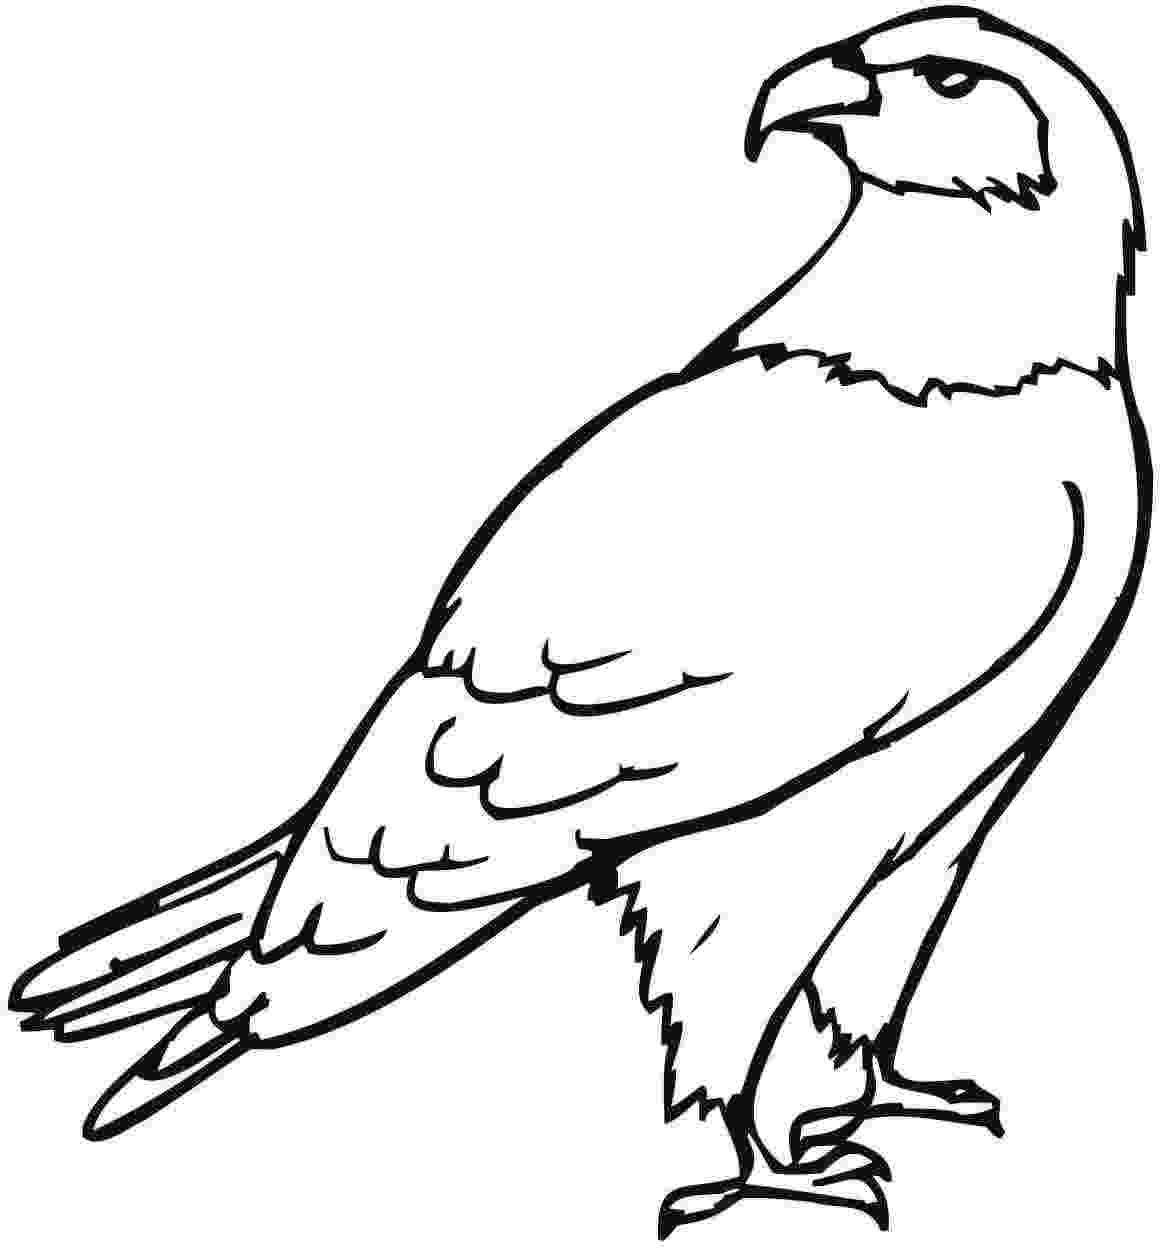 eagle colouring how to draw eagle for kids eagle drawing easy drawing eagle colouring